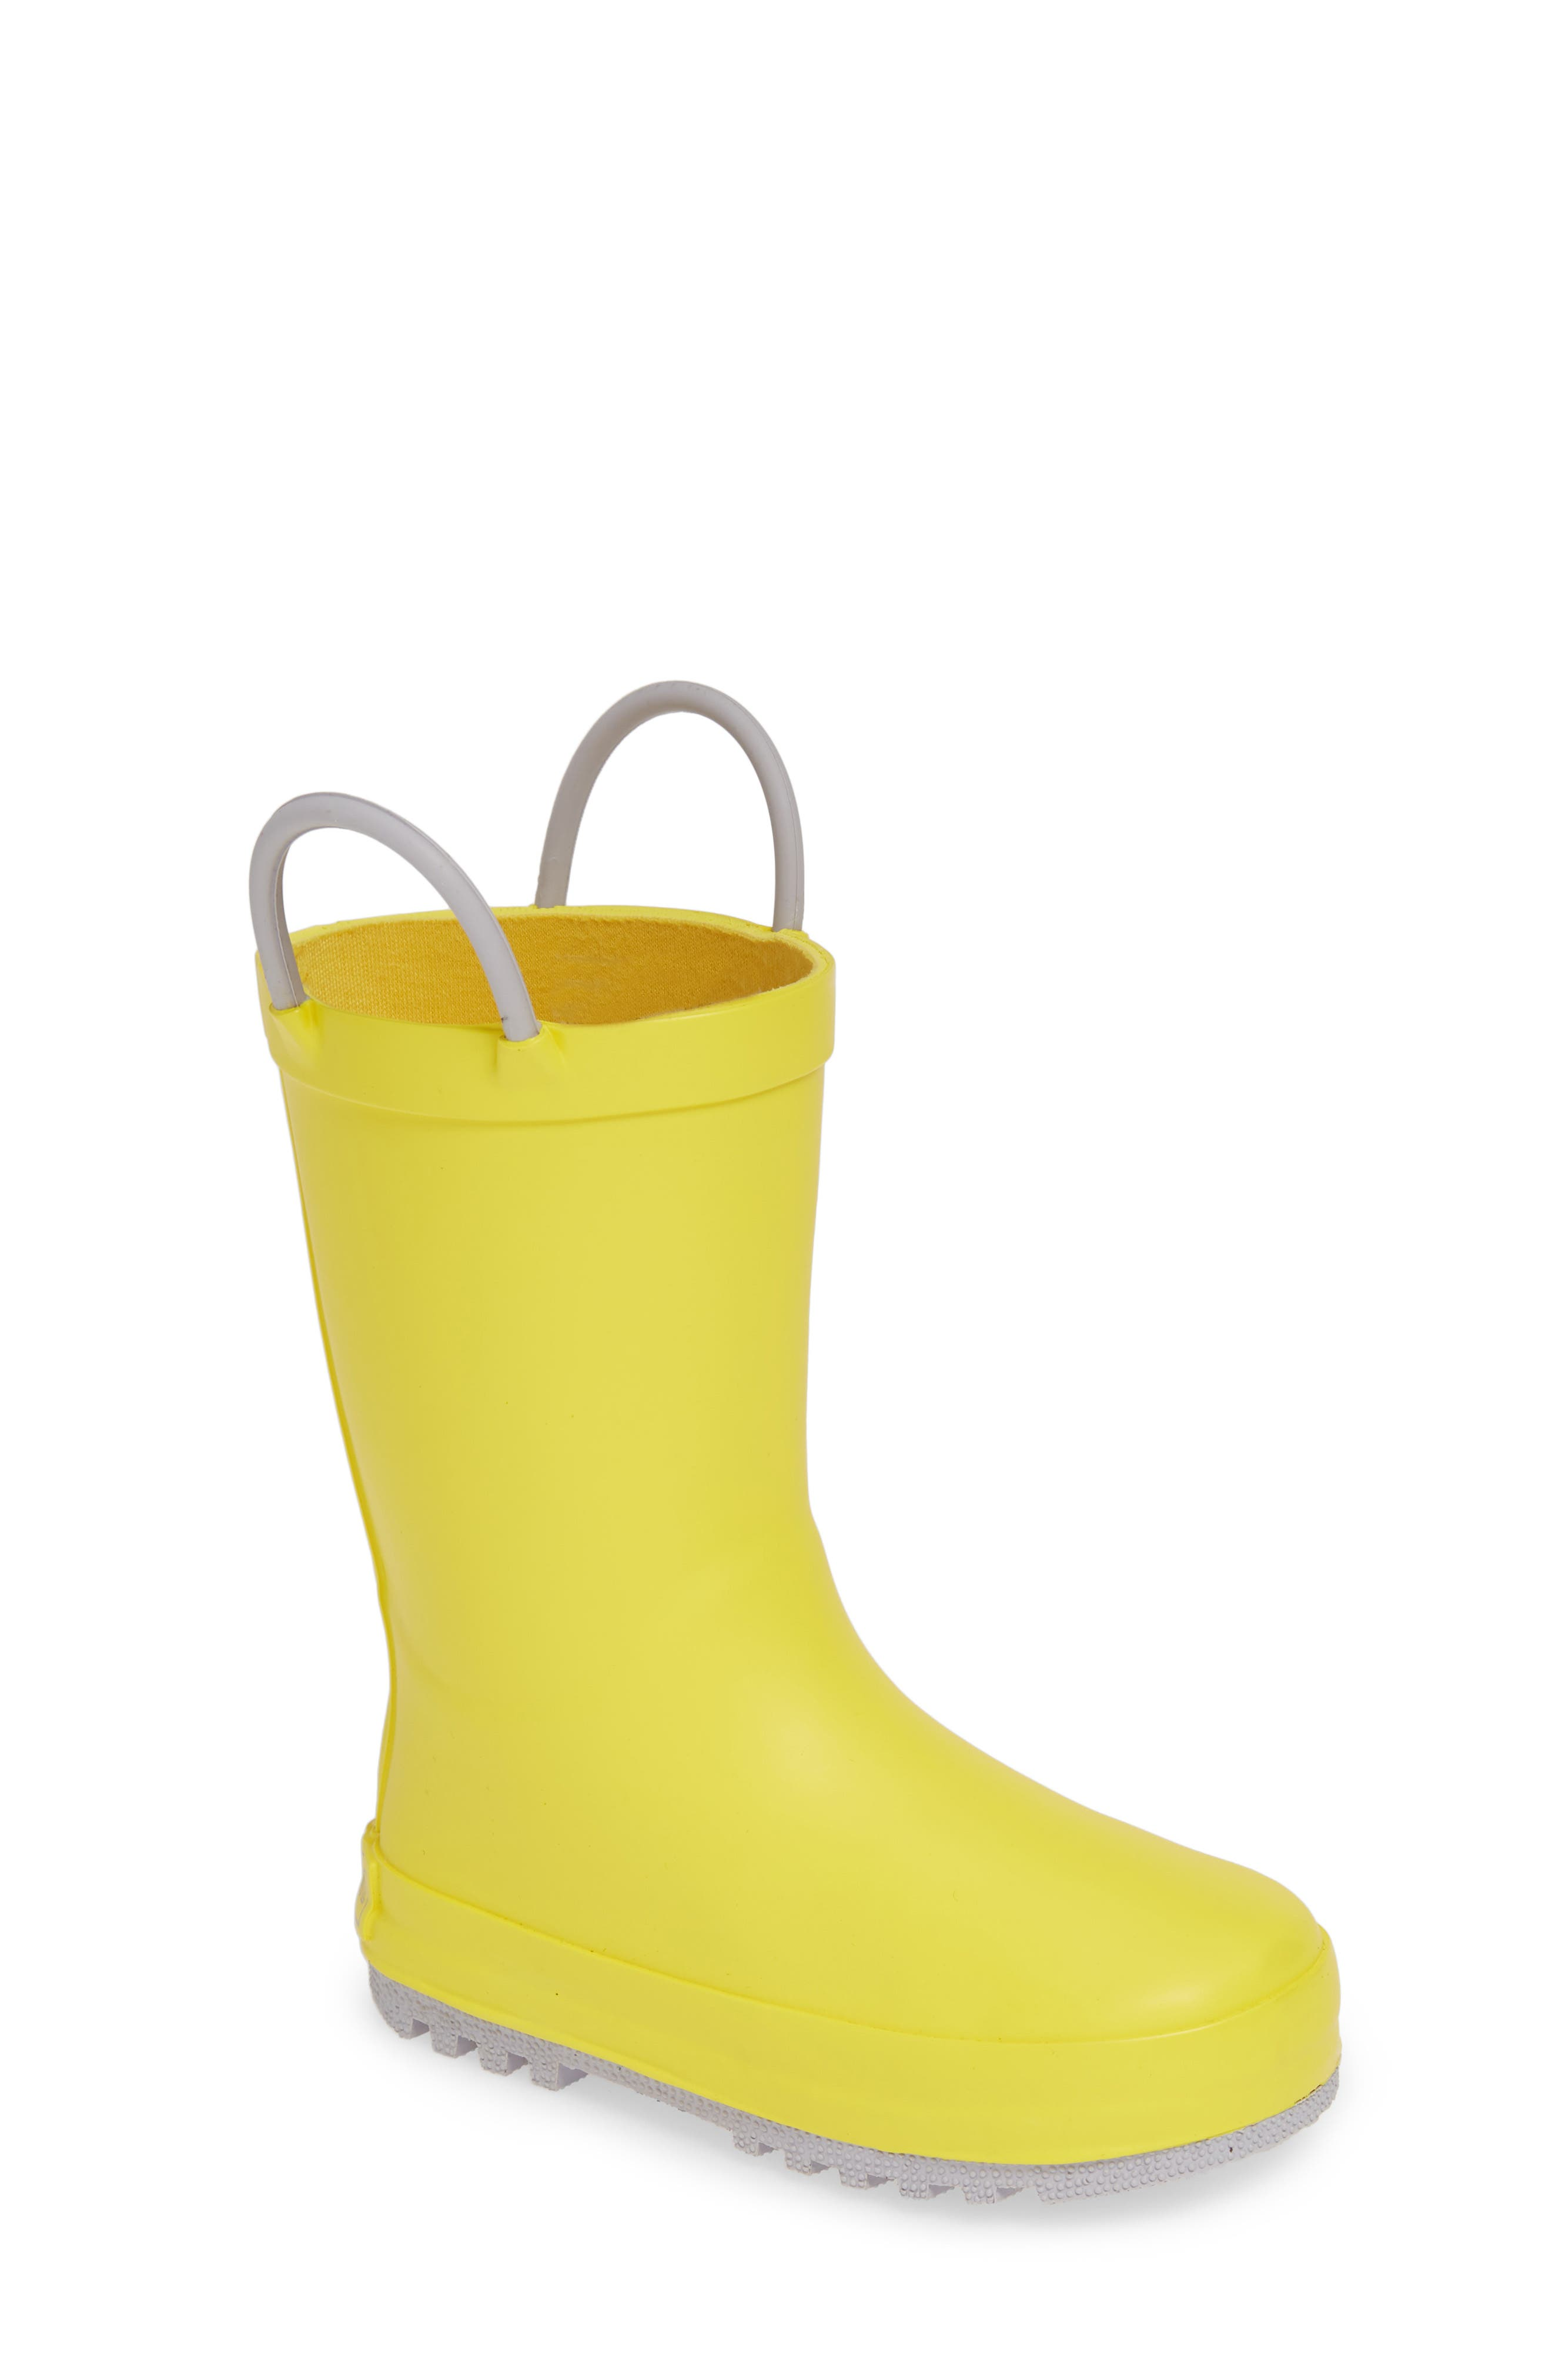 TUCKER + TATE, Puddle Rain Boot, Main thumbnail 1, color, YELLOW/ GREY RUBBER